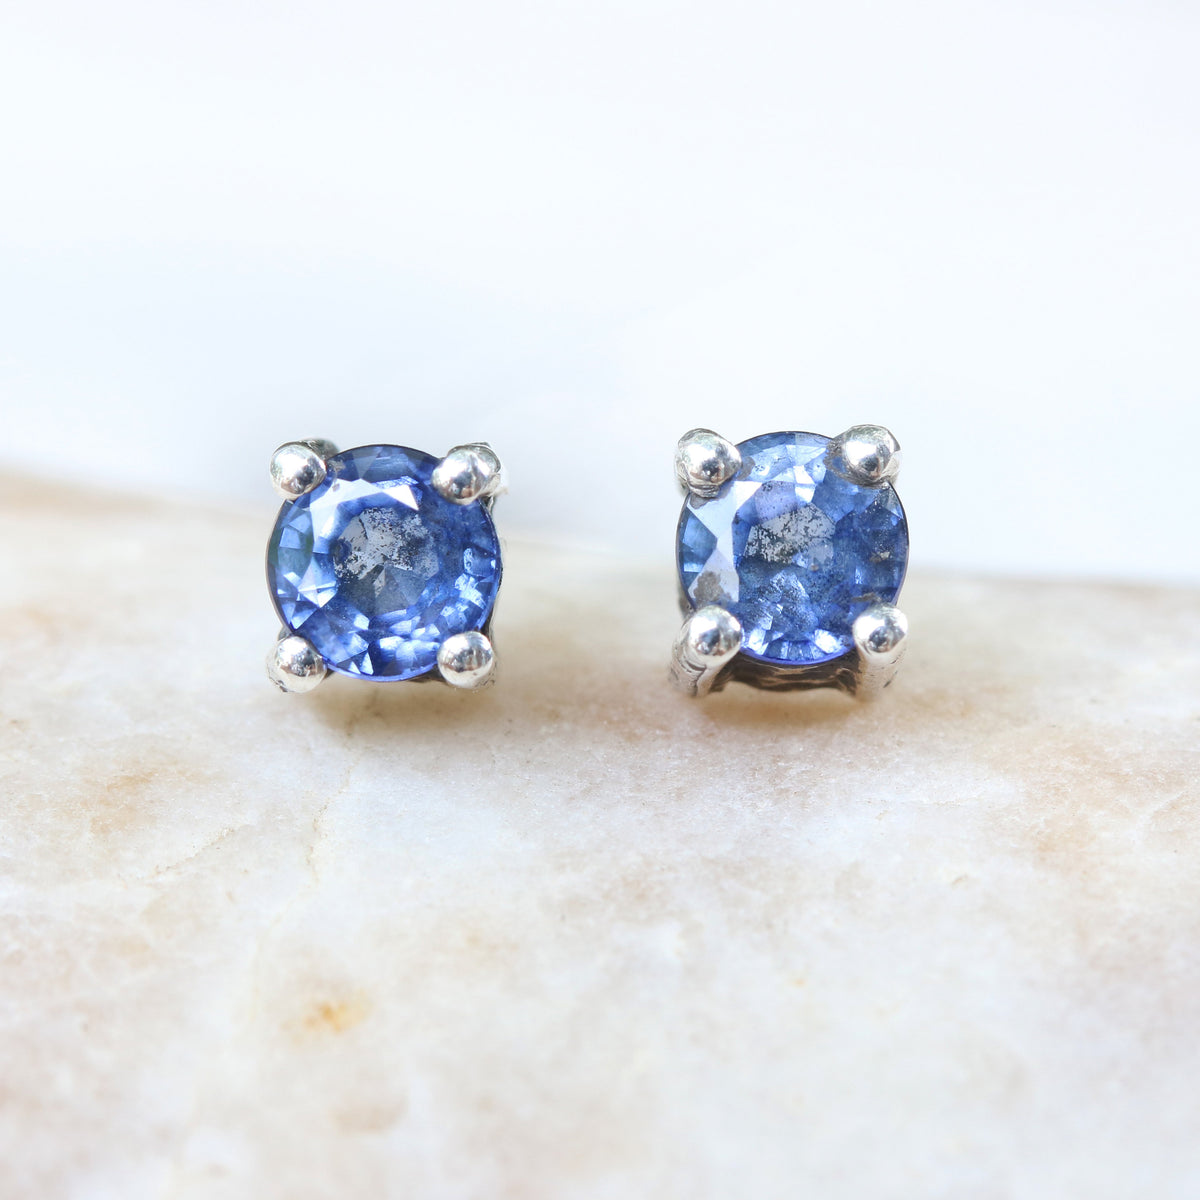 f4fbce65c Sterling silver stud earrings with faceted blue sapphire in prongs set –  Metal Studio Jewelry